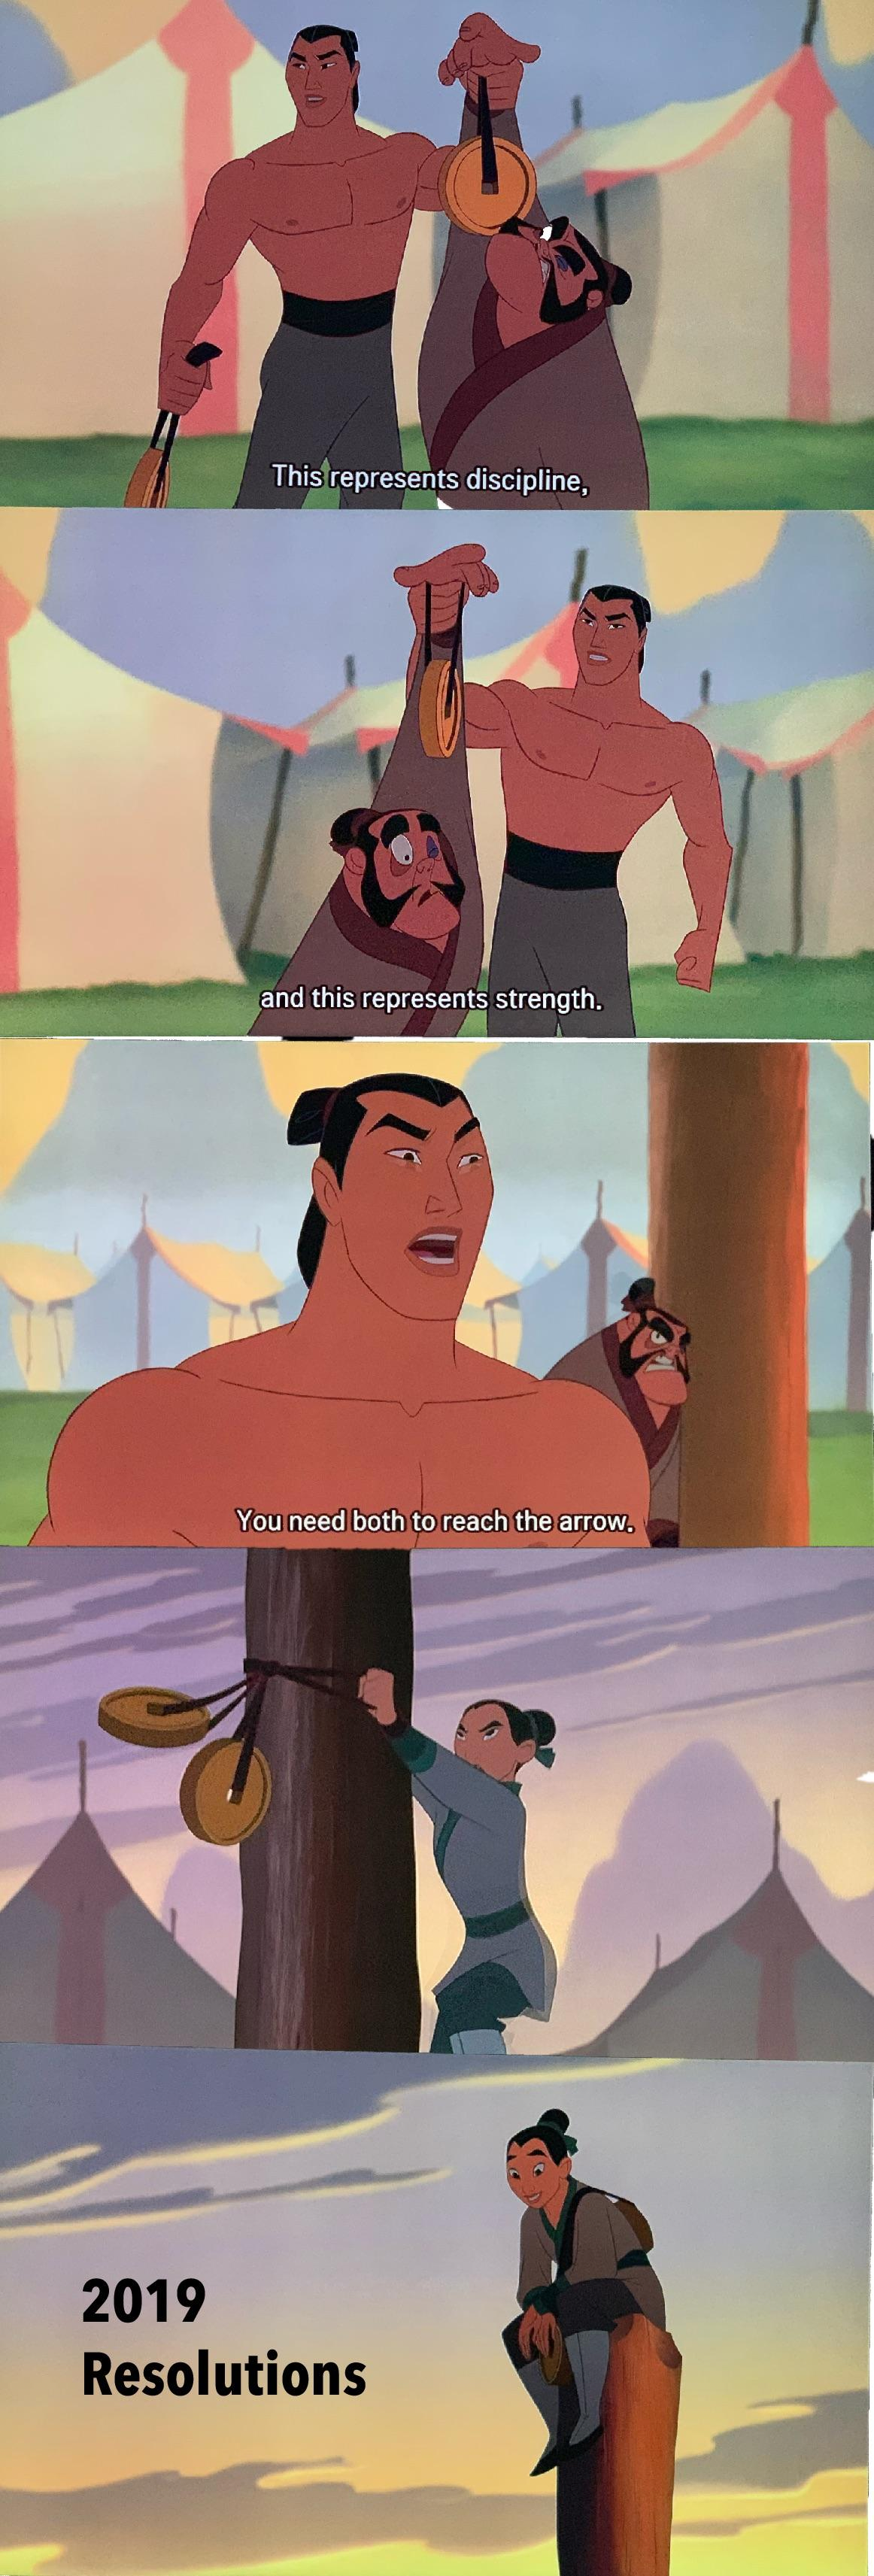 [Image] I never realized watching Mulan (1998) would give me the best 2019 resolutions' motivation.